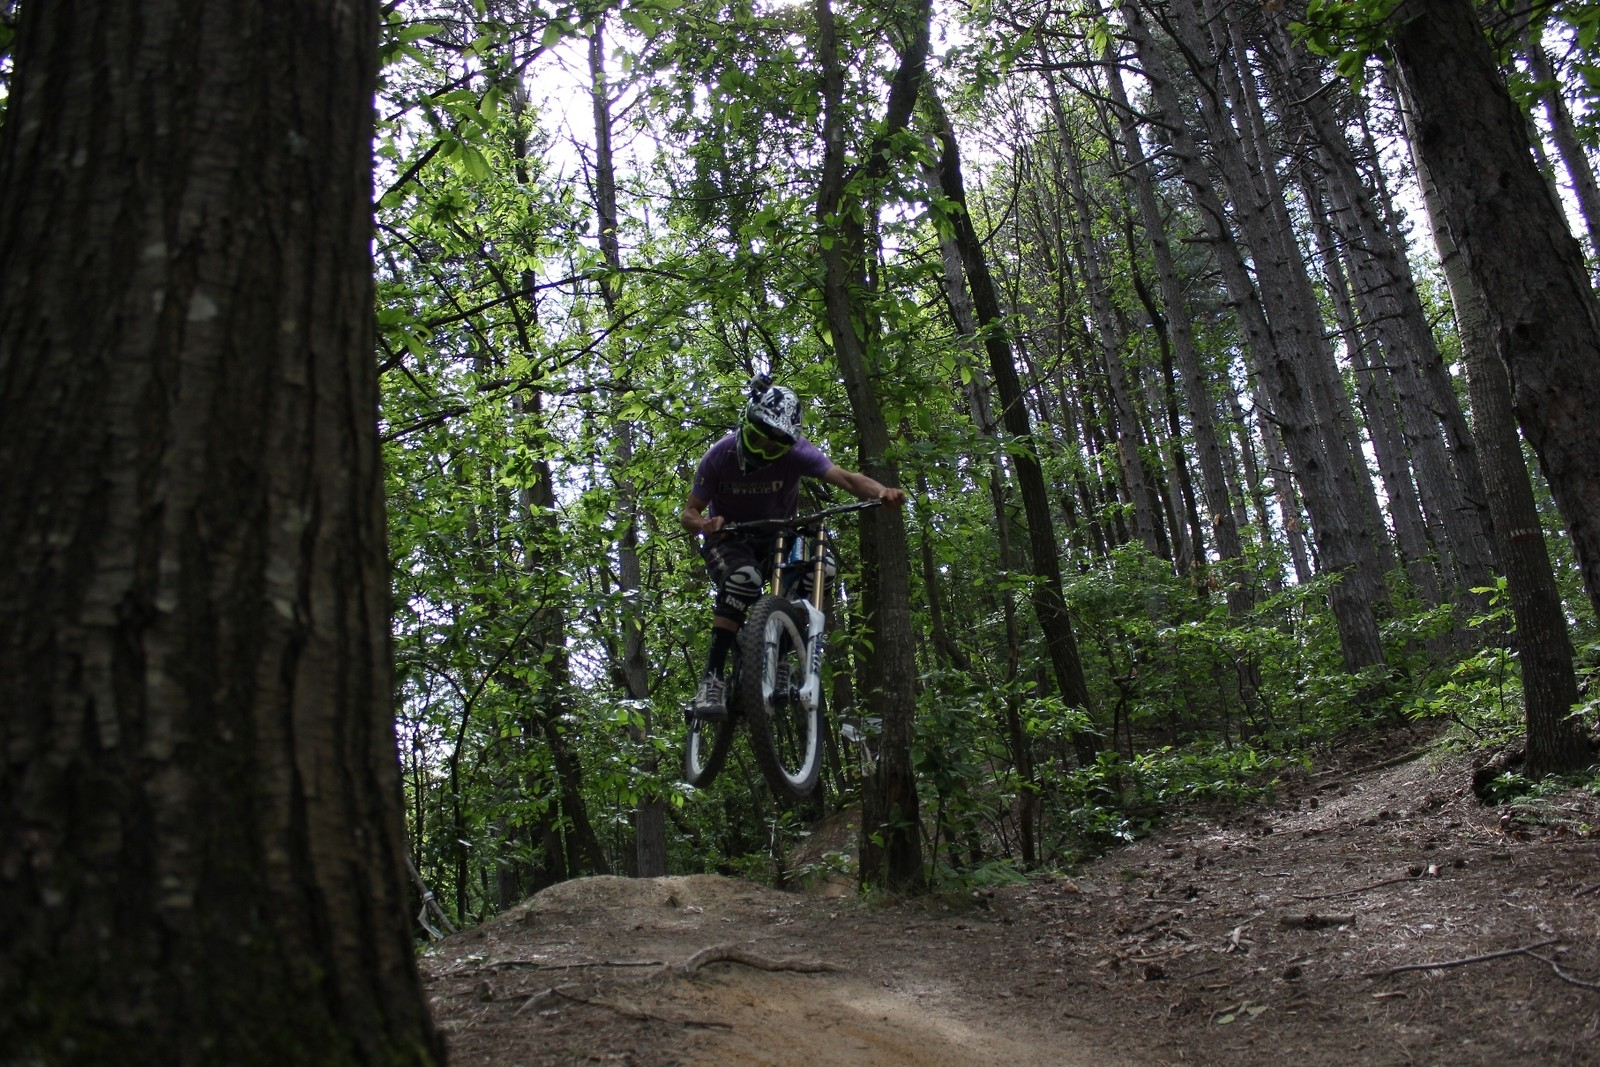 grammyx pinewood - Grammyx - Mountain Biking Pictures - Vital MTB